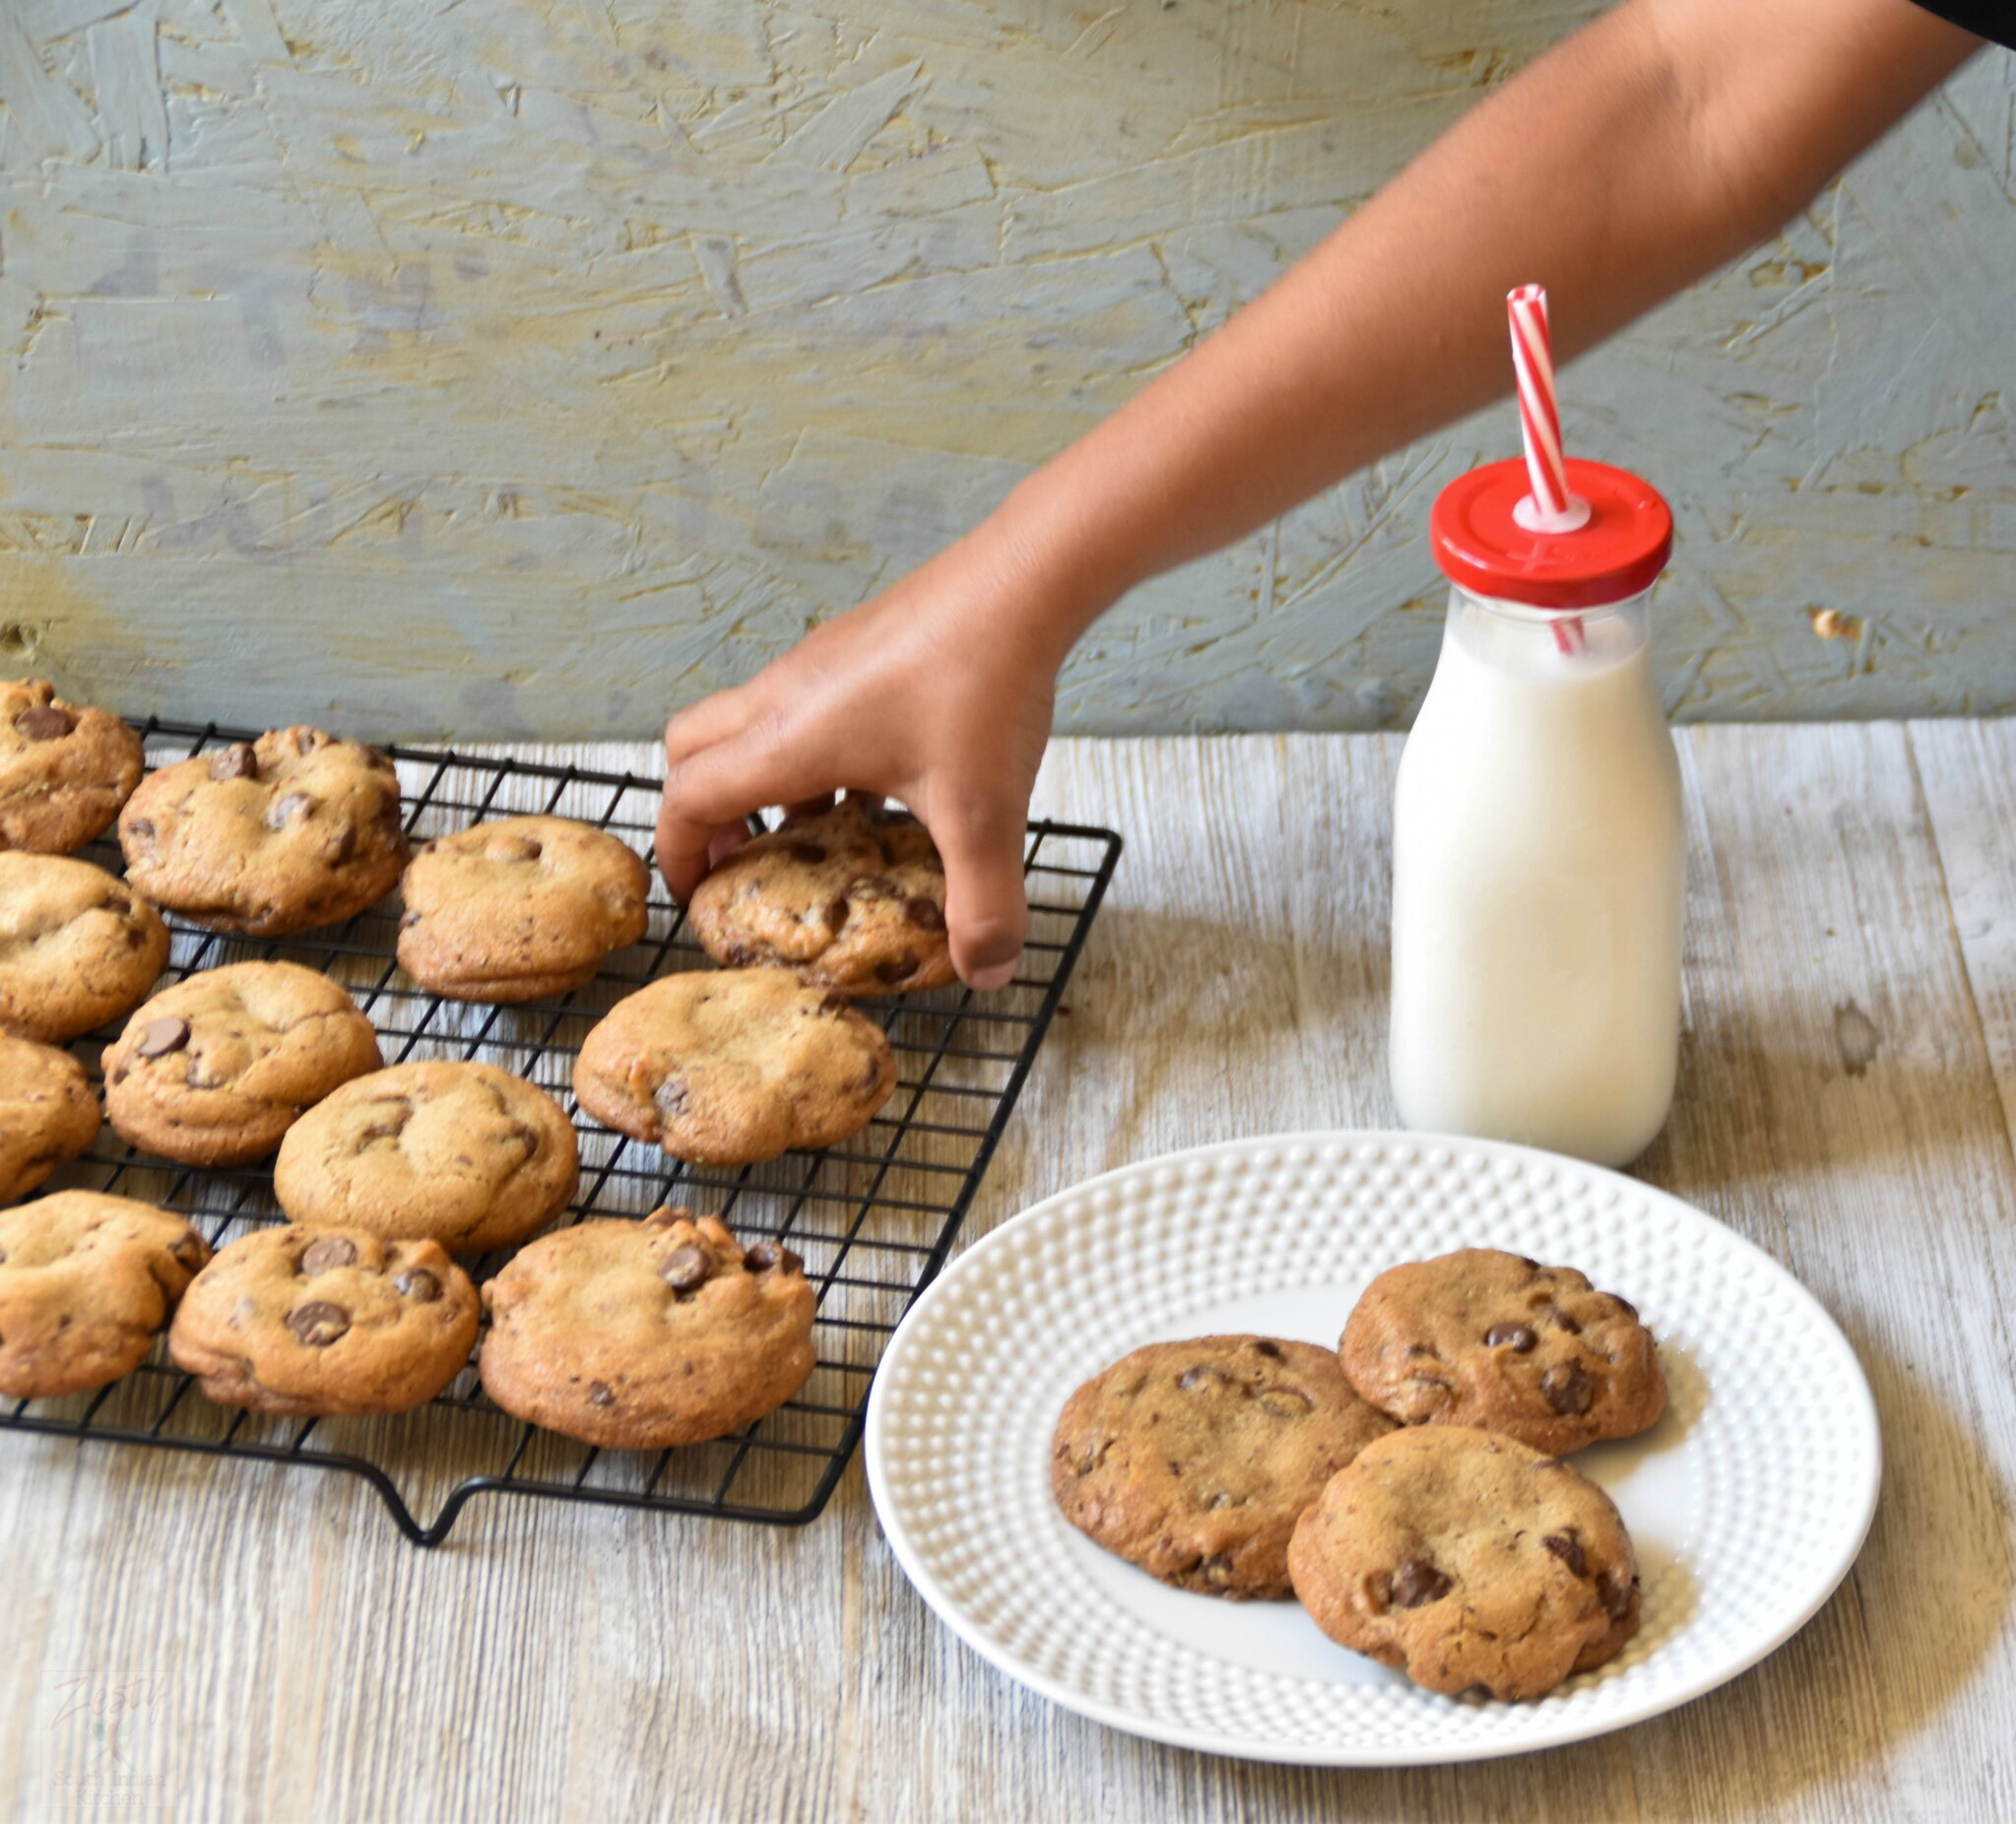 Coconut oil chocolate chip cookies #RecipeMakeover - Zesty South ...